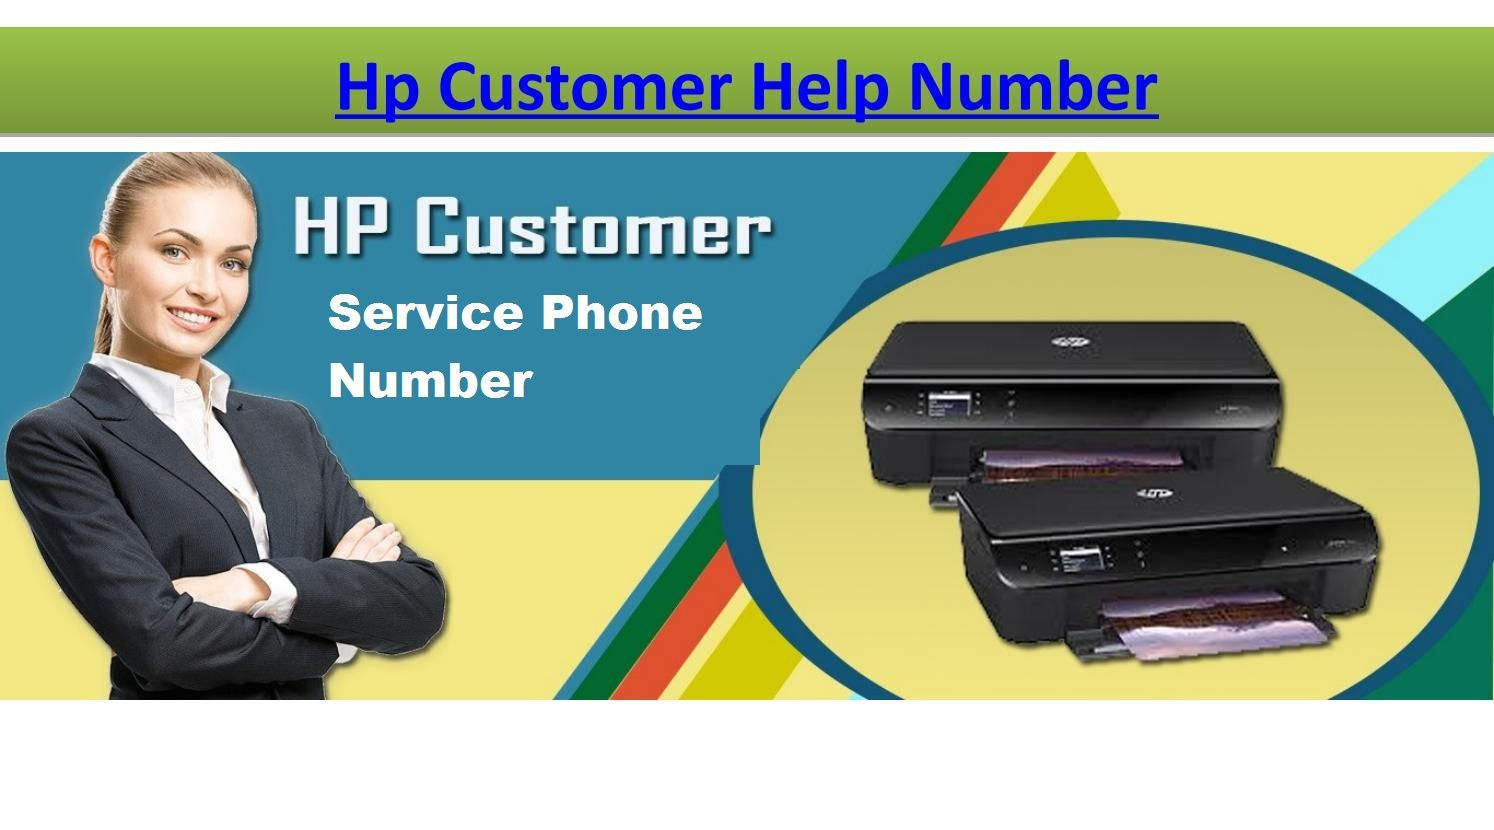 HP always believe in to provide an innovative product